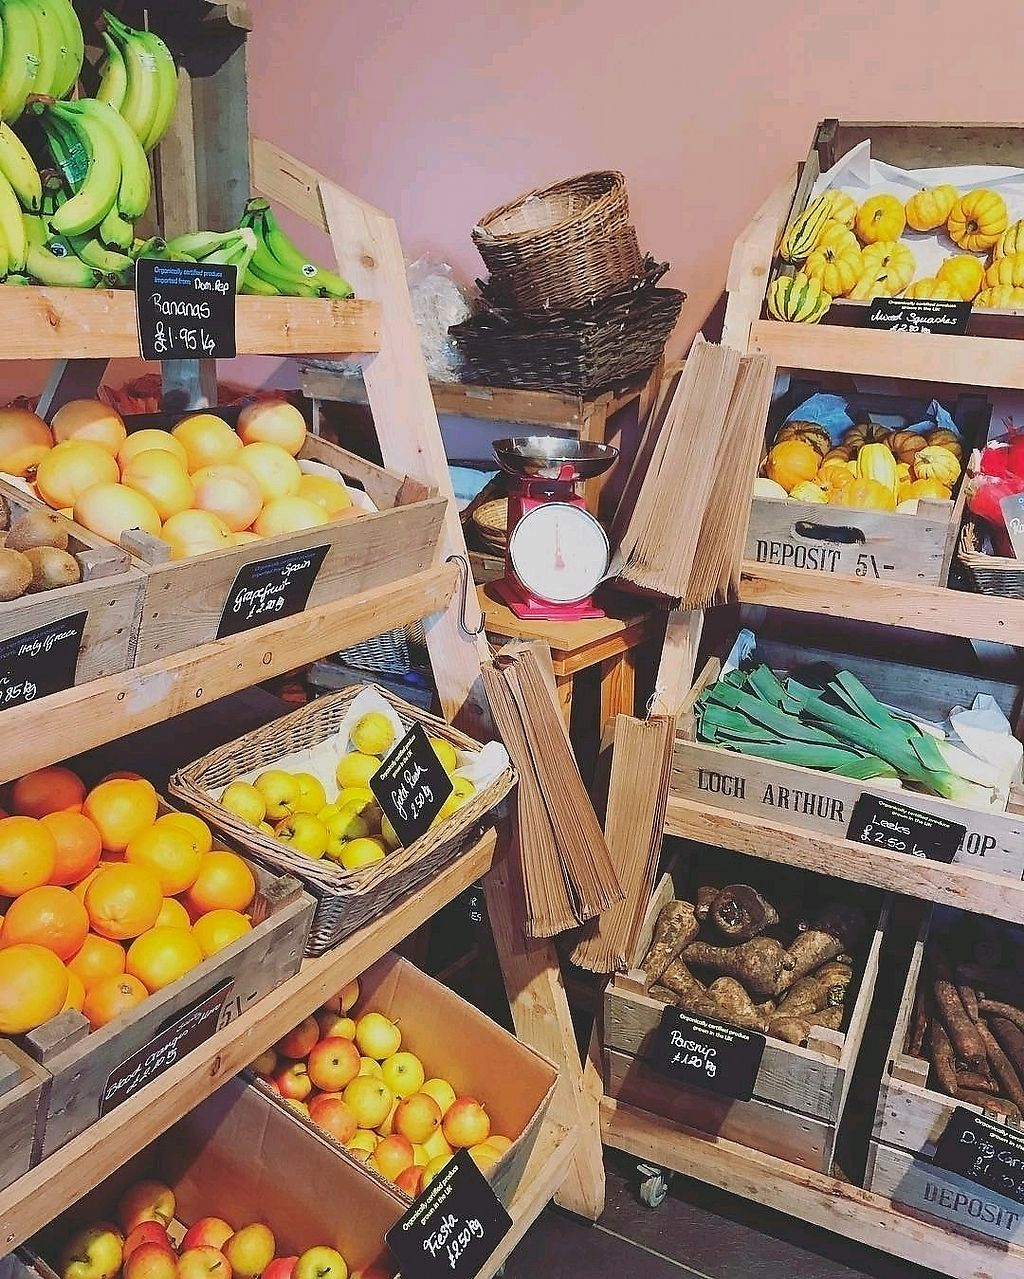 """Photo of Loch Arthur Farm Shop Cafe and Bakery  by <a href=""""/members/profile/craigmc"""">craigmc</a> <br/>more organic <br/> March 29, 2018  - <a href='/contact/abuse/image/96023/377960'>Report</a>"""